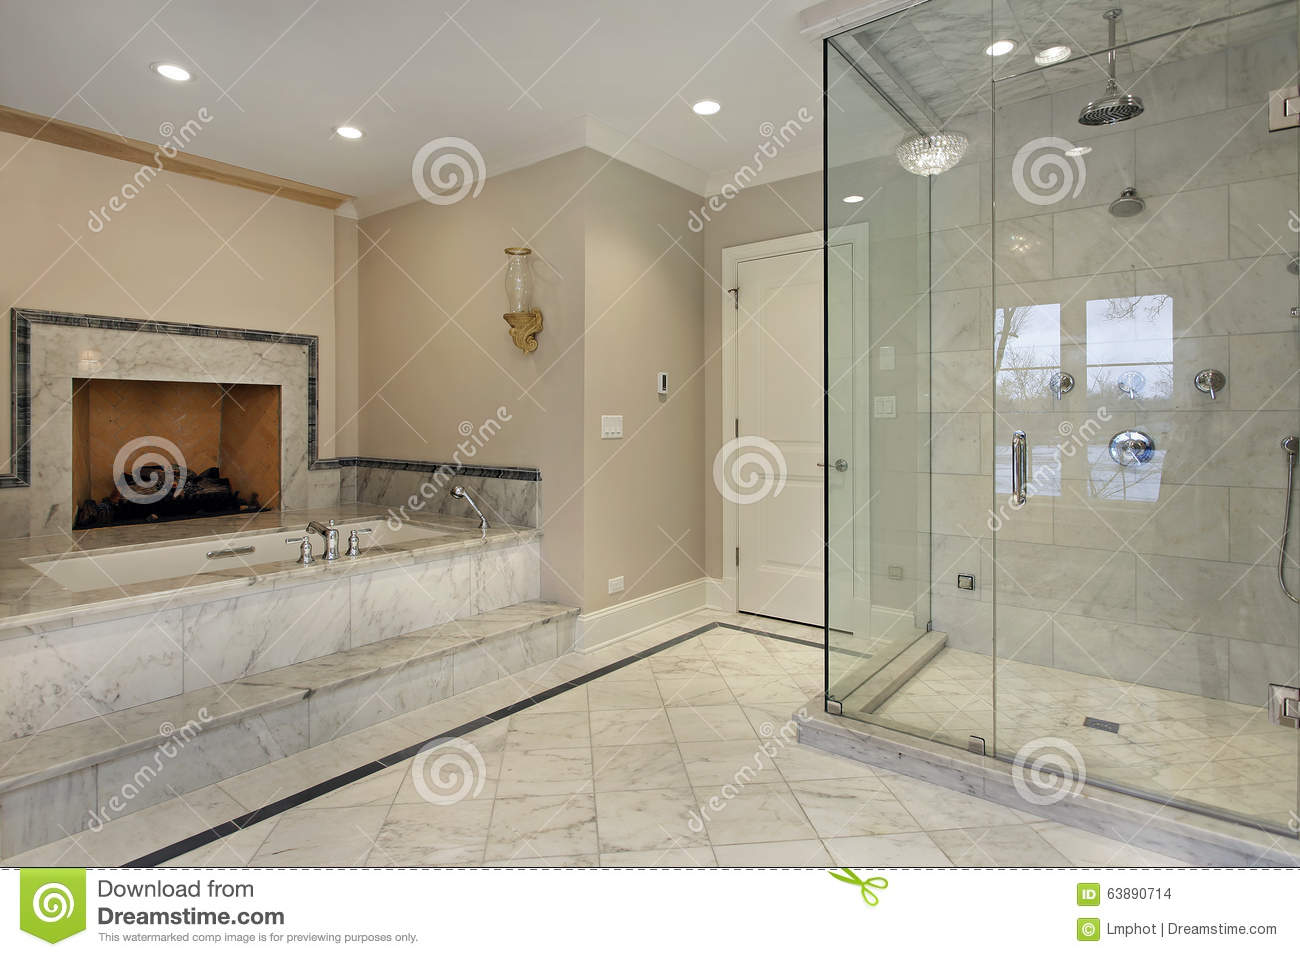 Master Bath With Fireplace Stock Photo - Image: 63890714